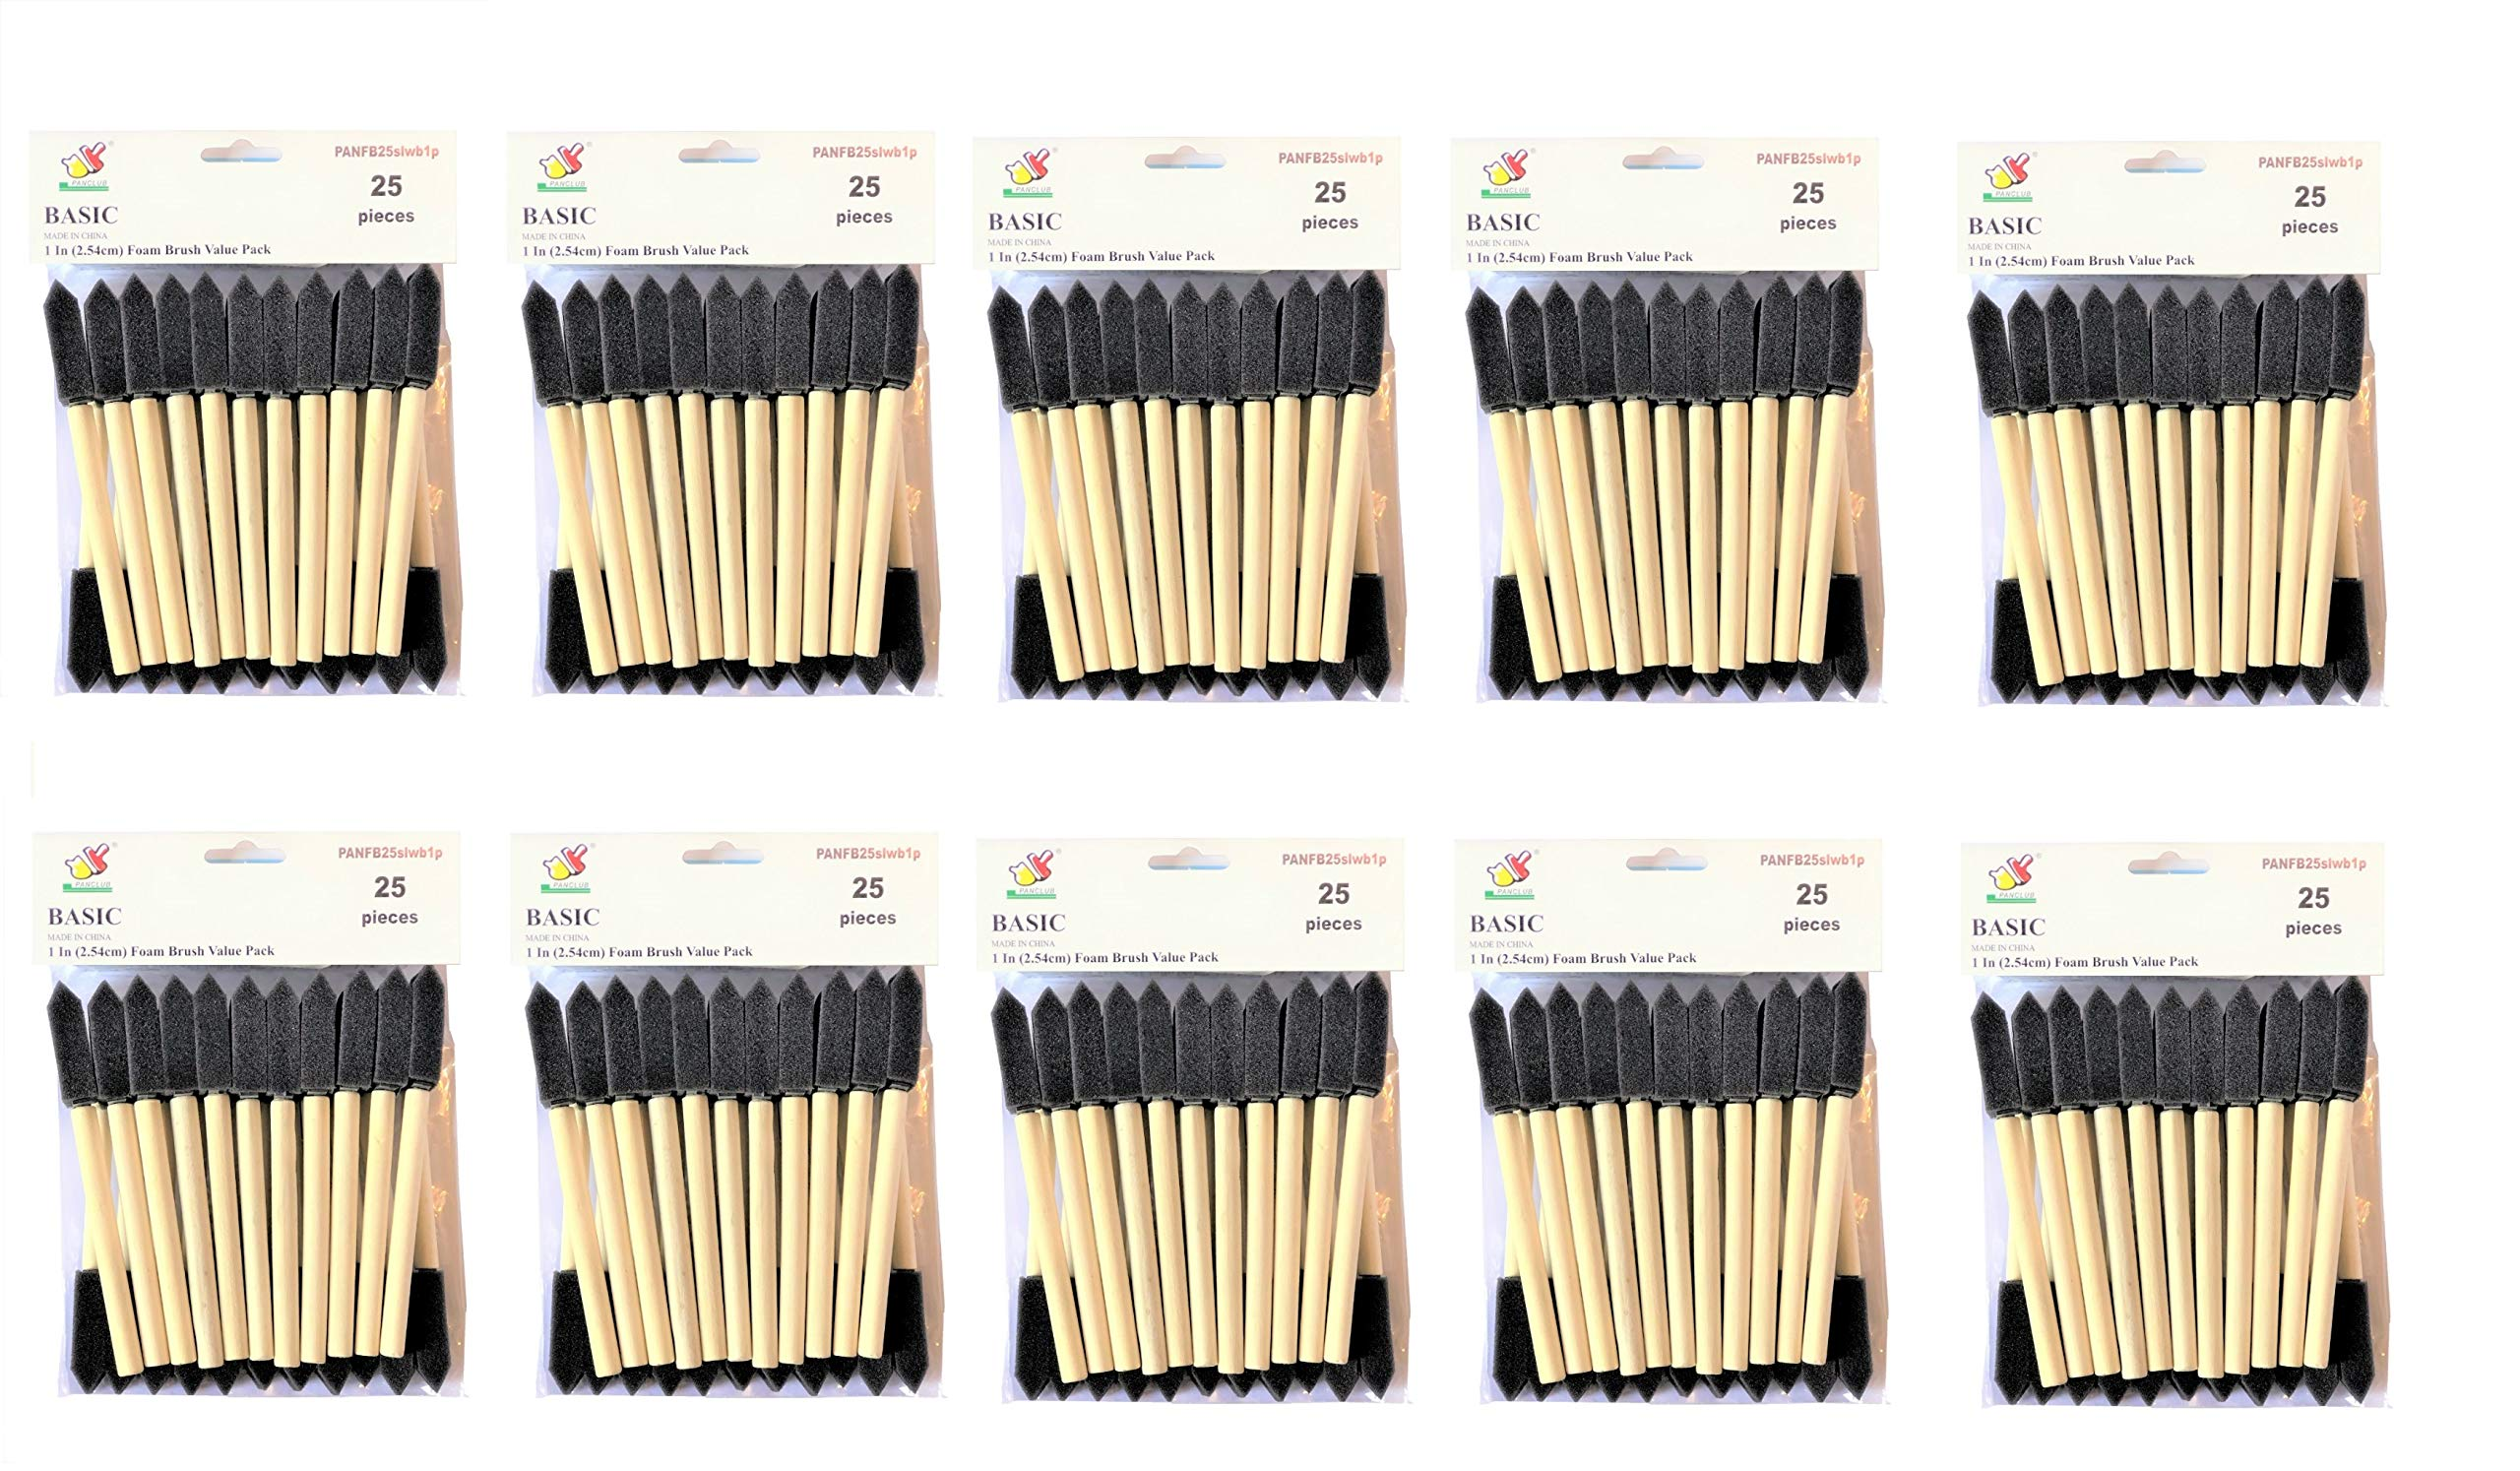 PANCLUB Paint Foam Brush Value Pack 1 Inch - 25 Per/Pack 10 Packs | with Wood Handles | Great for Art, Varnishes, Acrylics, Stains, Crafts by PANCLUB